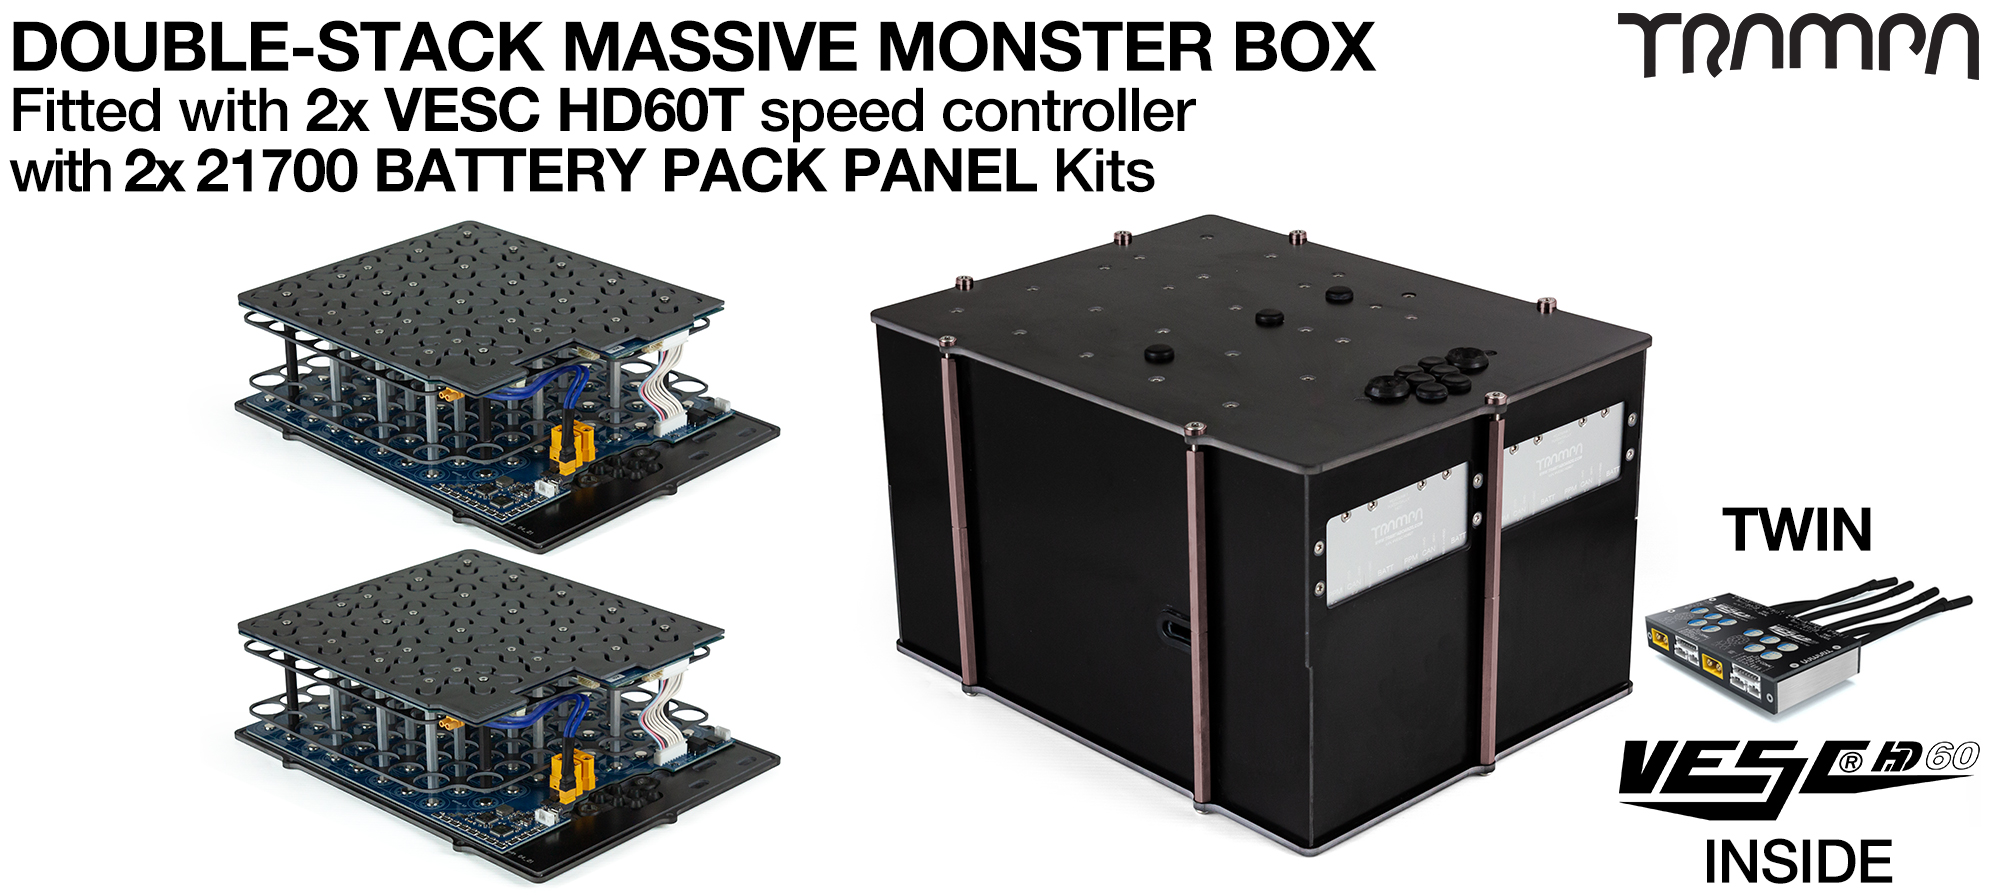 2WD DOUBLE STACK MASSIVE MONSTER Box with 21700 PCB Pack with 2x VESC HD-60Twin - NO CELLS